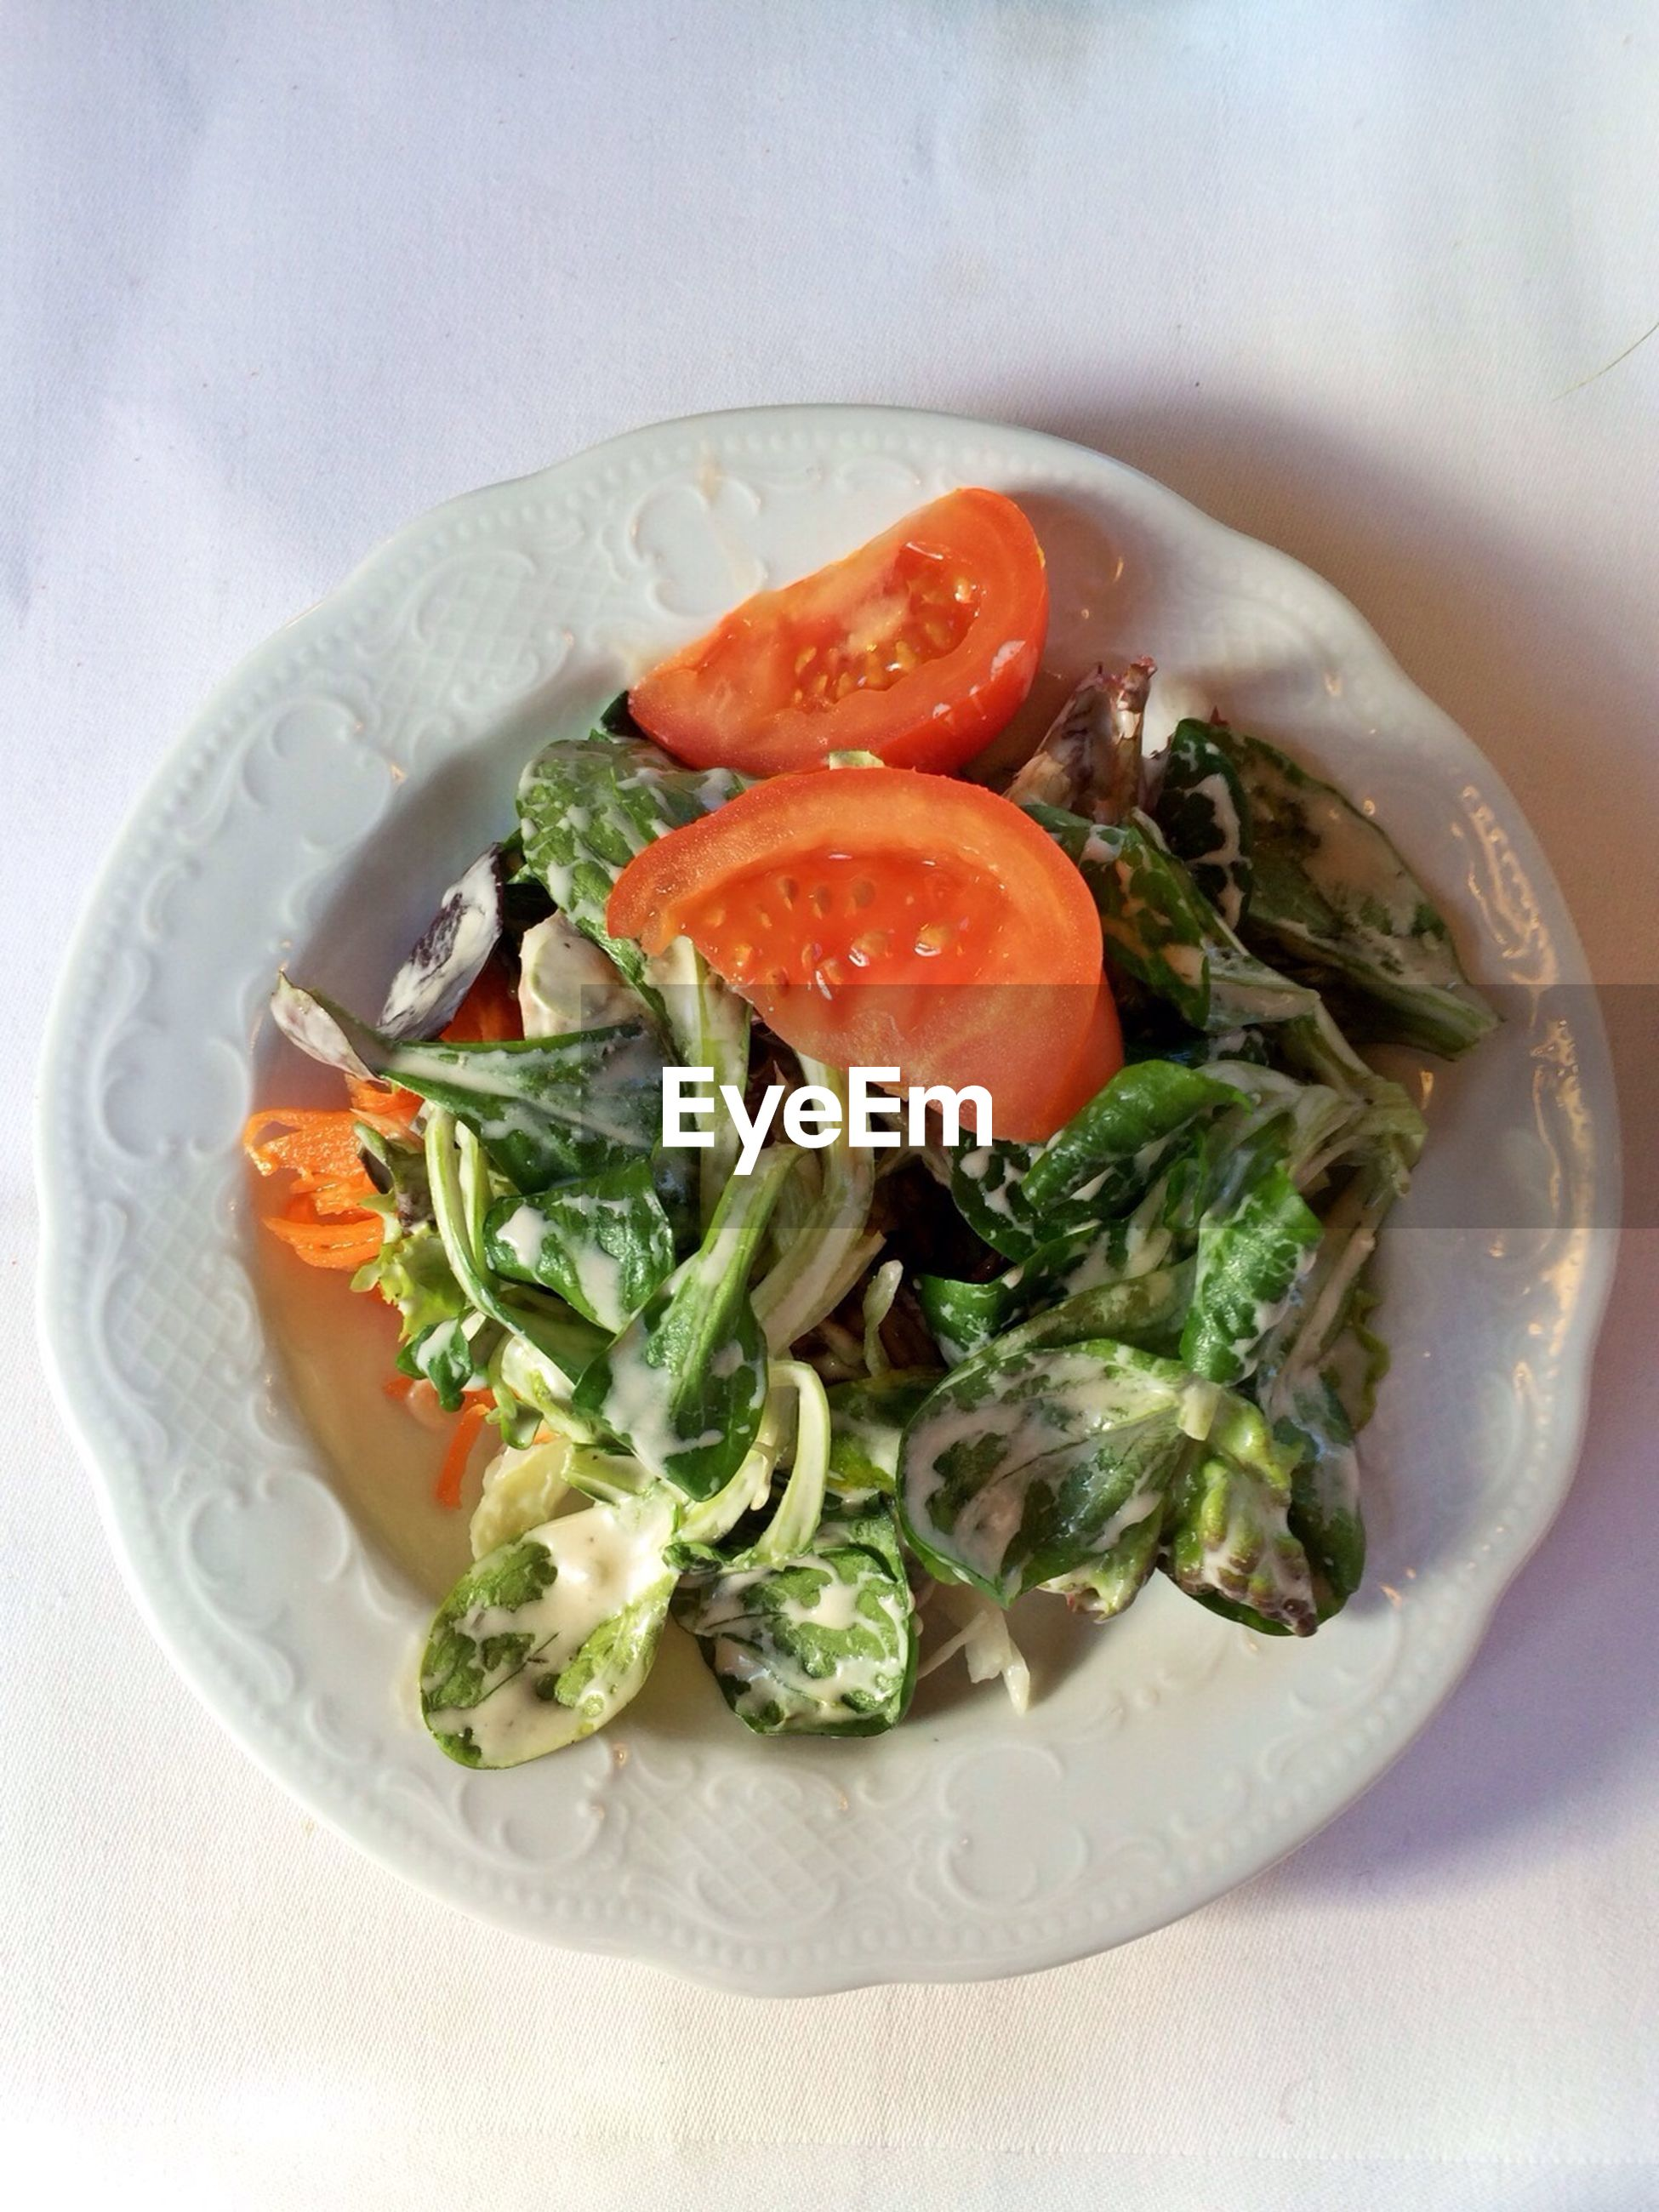 Elevated view of salad with tomato